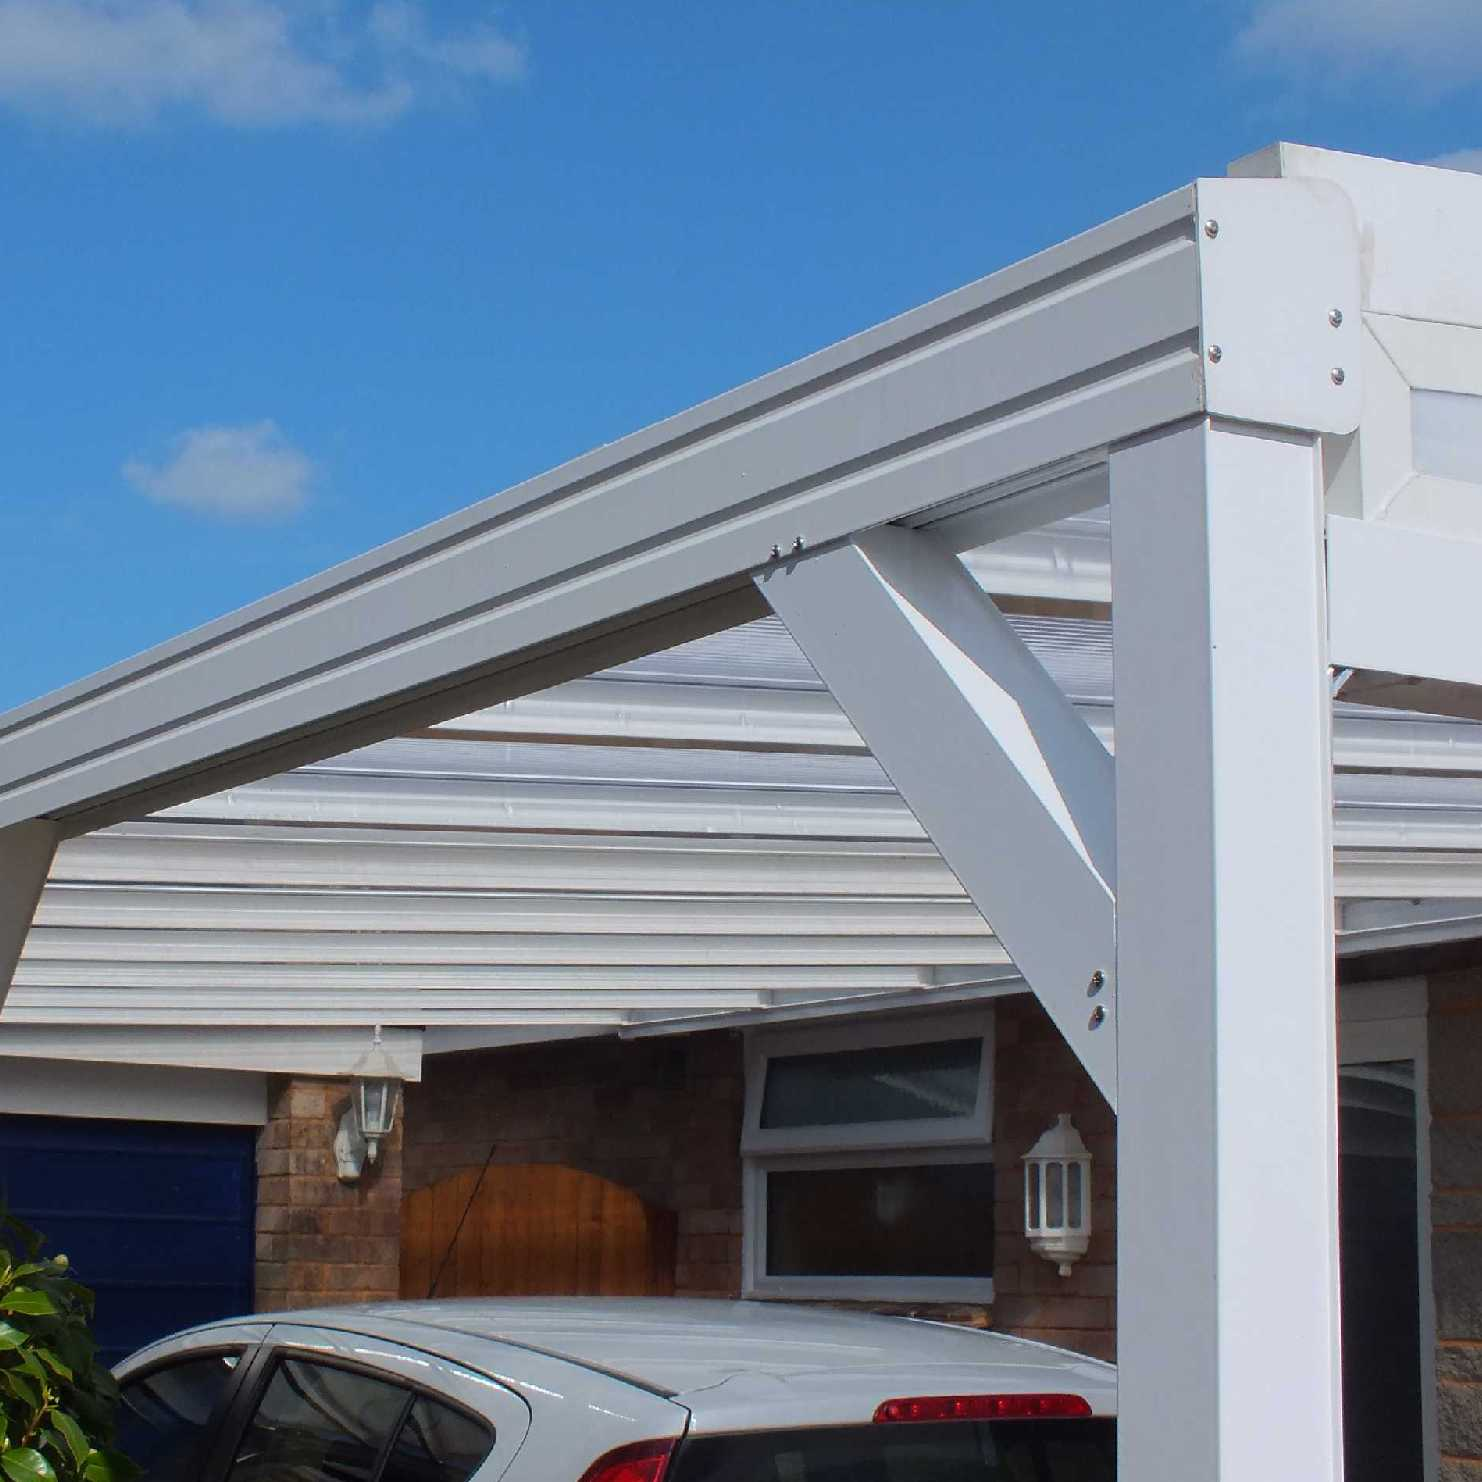 Great deals on Omega Smart Lean-To Canopy with 16mm Polycarbonate Glazing - 3.5m (W) x 4.5m (P), (3) Supporting Posts